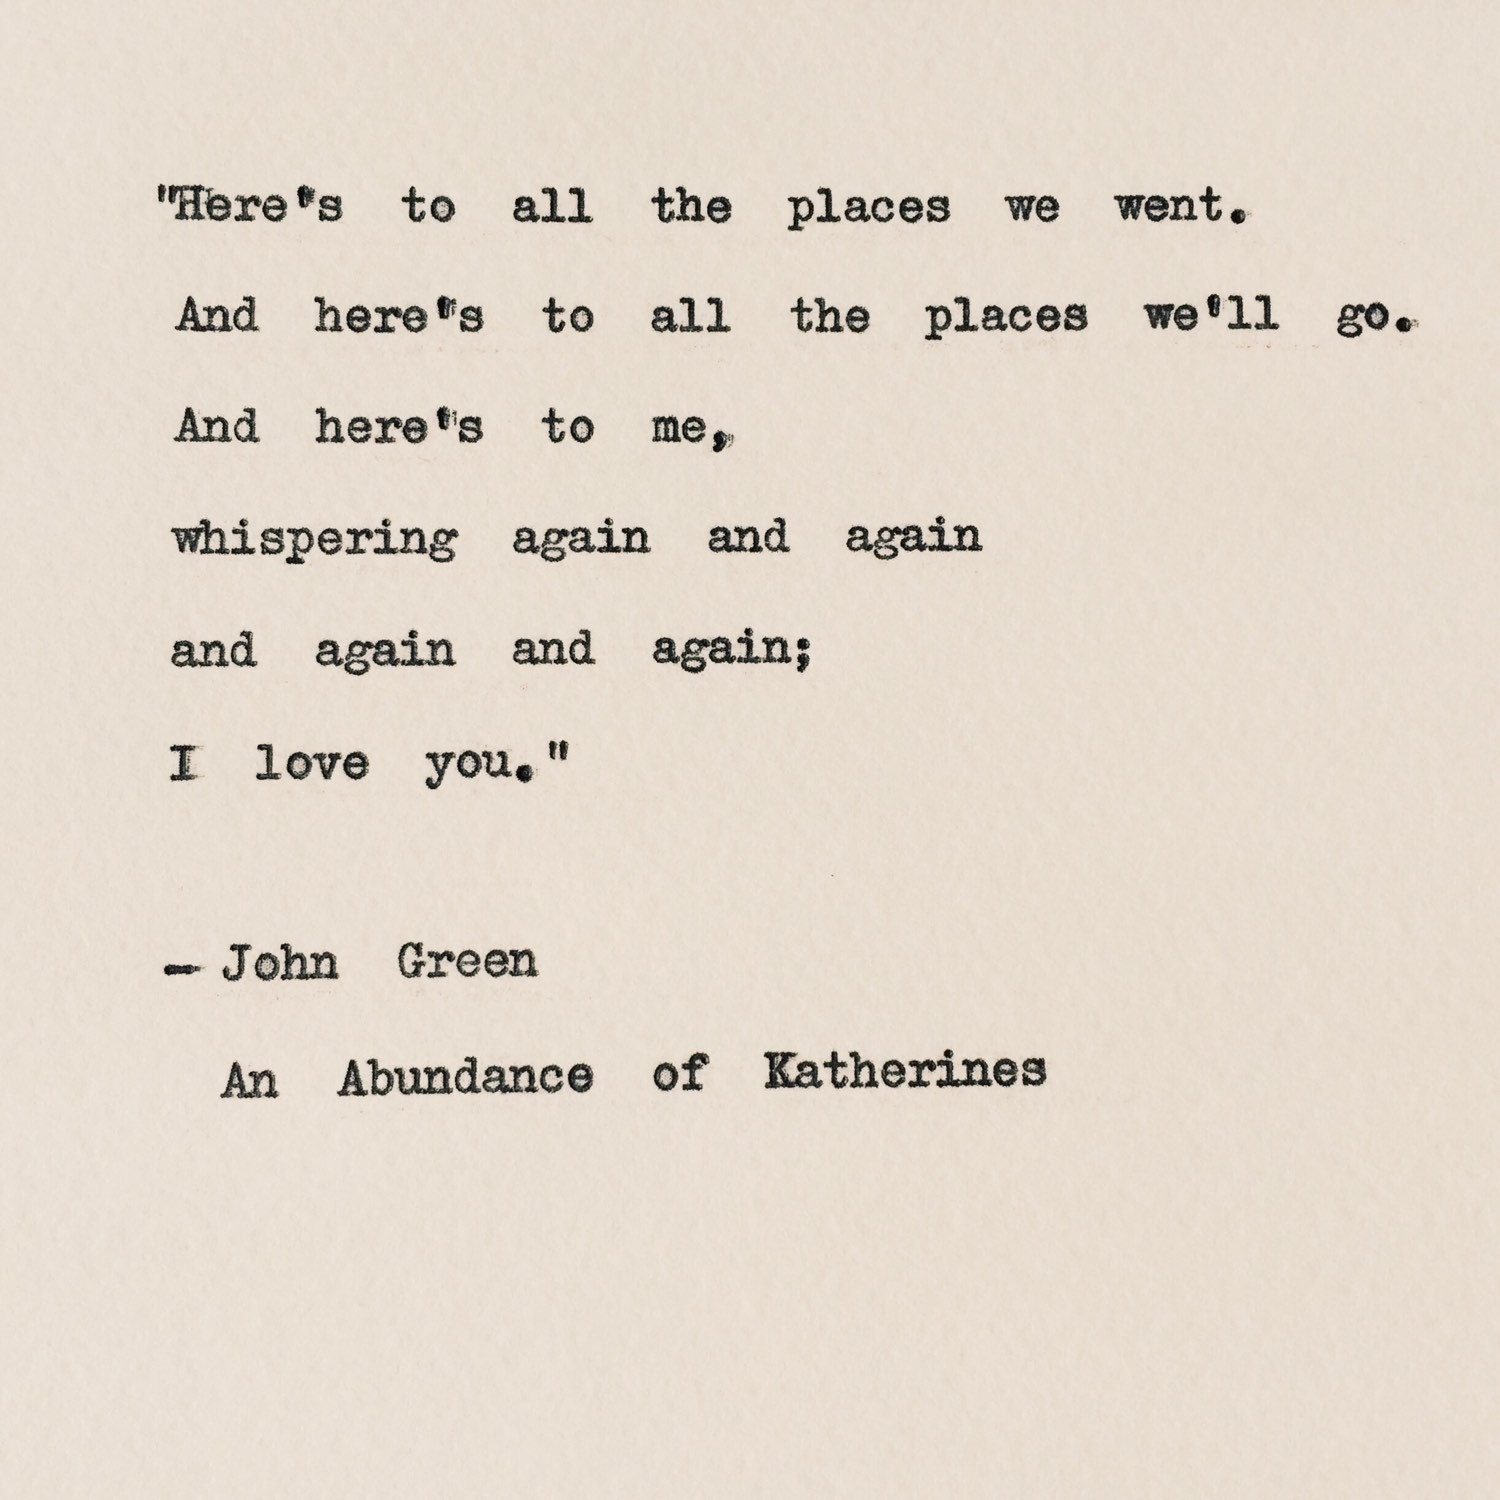 love you quote/ John Green typewriter quote/ An Abundance of